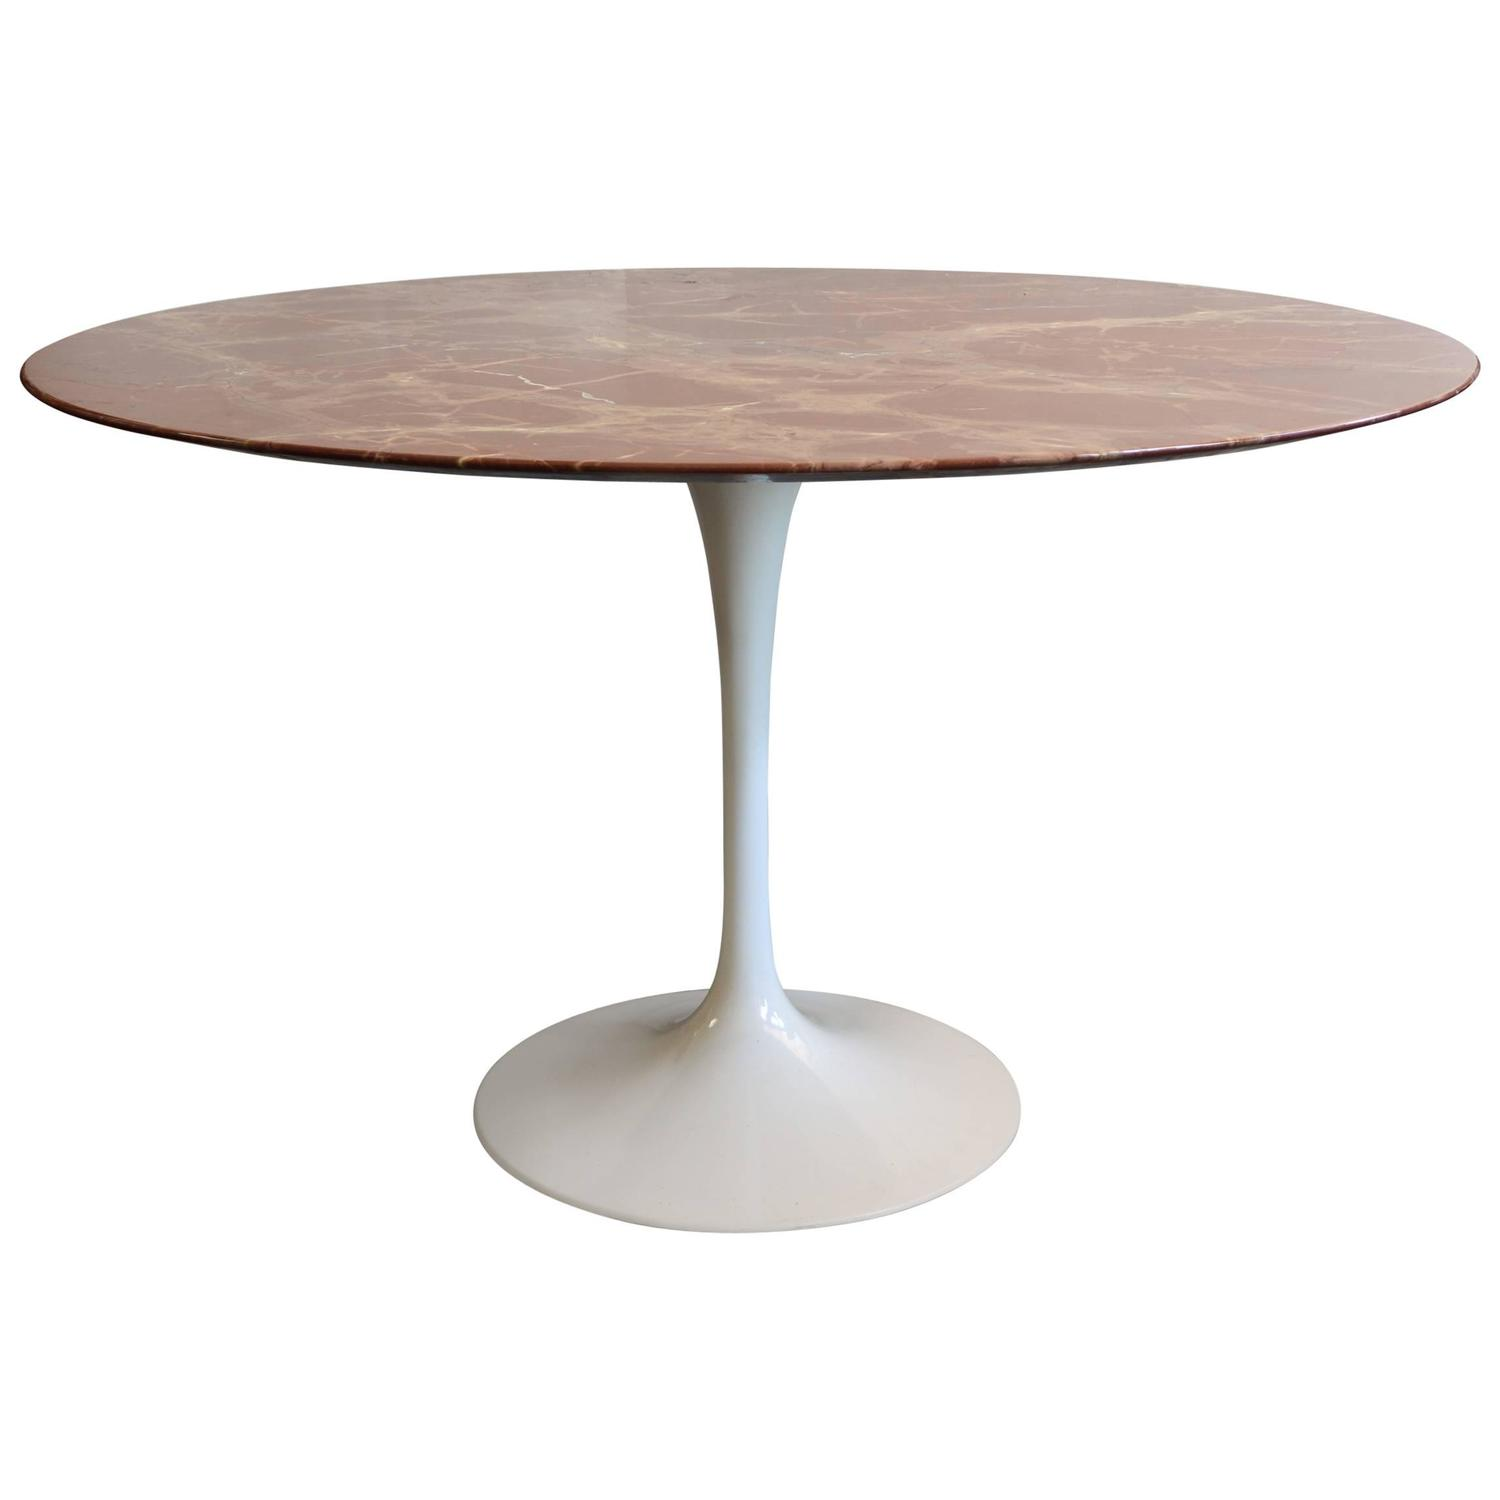 Saarinen Rose Marble Tulip Dining Table at 1stdibs : 4815113z from www.1stdibs.com size 1500 x 1500 jpeg 39kB